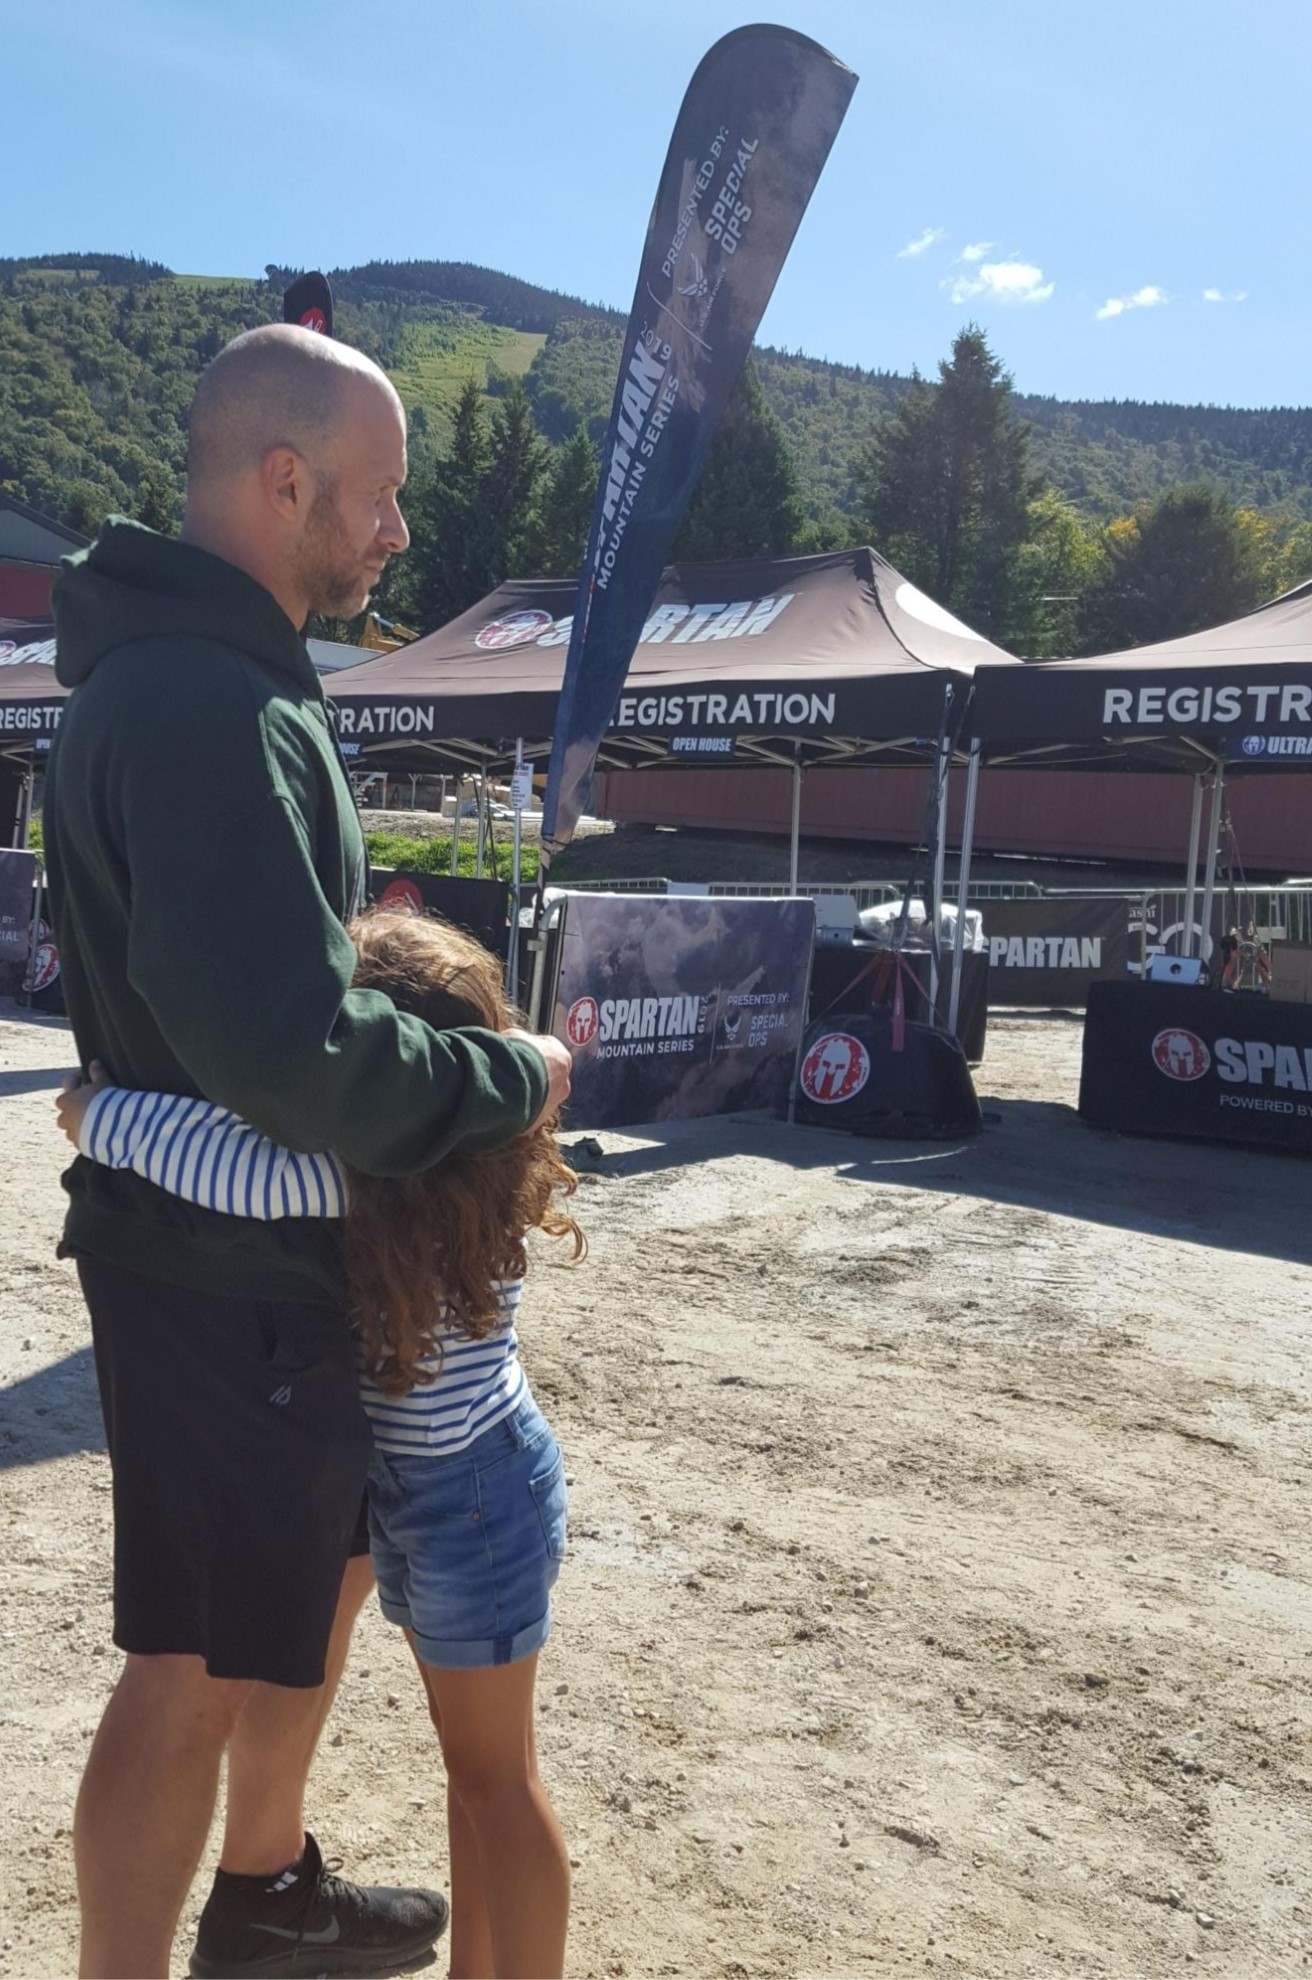 """Me and my #1 at the registration tents the day before the race. She's hugging me, wishing me luck and telling me """"Be safe, Daddy"""". (Photo Credit: My Wife)"""